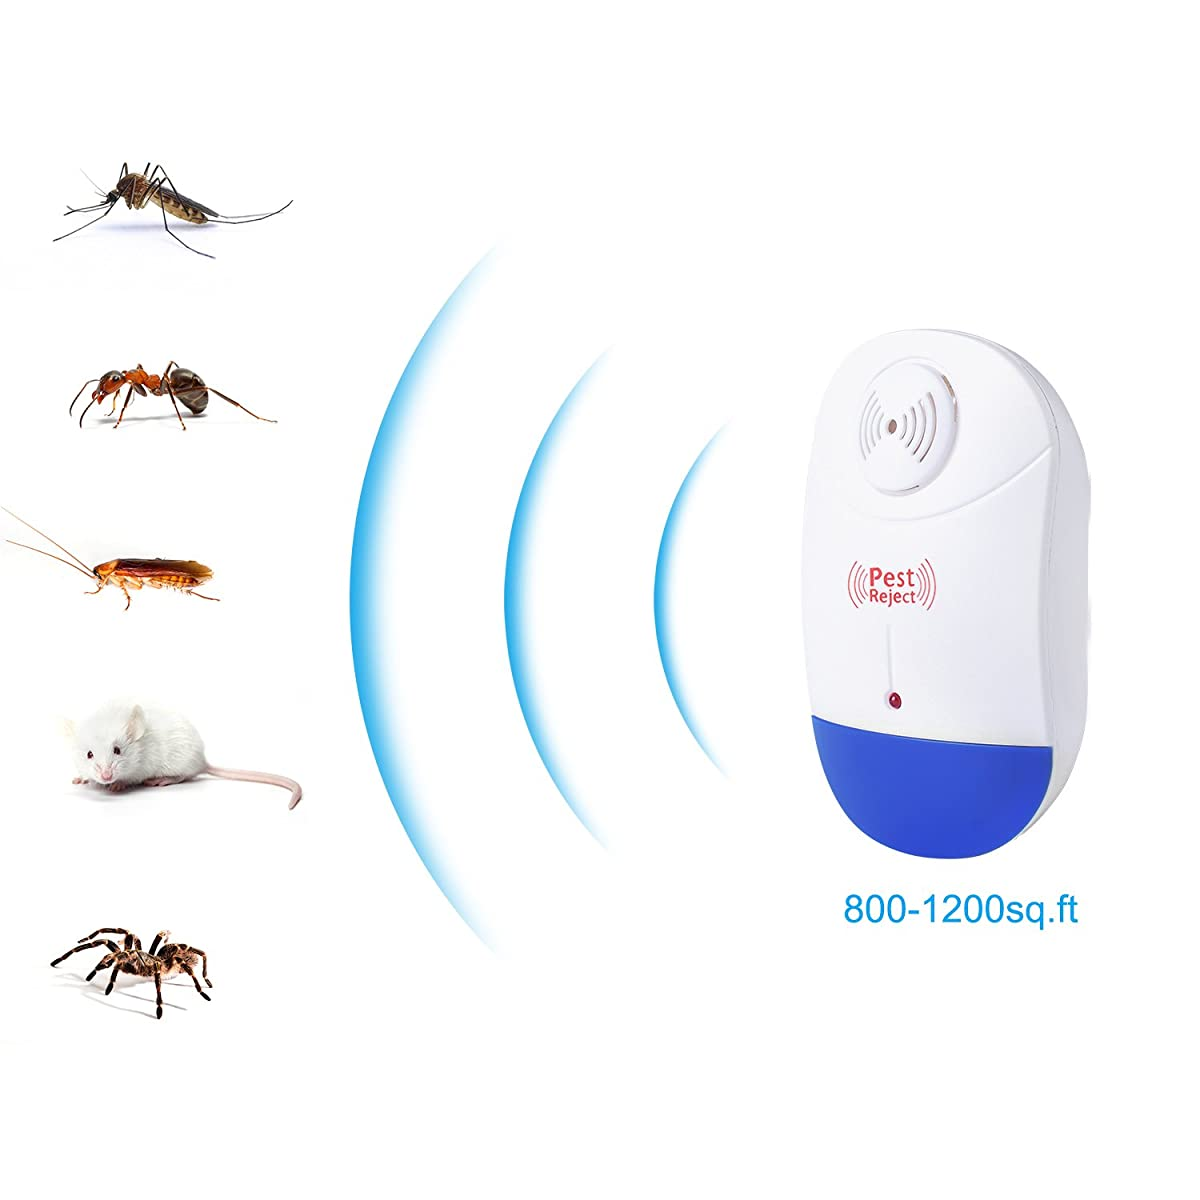 Pest Control Ultrasonic Repeller - Electronic Plug In repellent indoor 4packs - Rodents & Insects Repellent - Repels Mosquitoes, Mice, Spiders, Ants, Rats, Roaches, Bugs, Environment-friendly